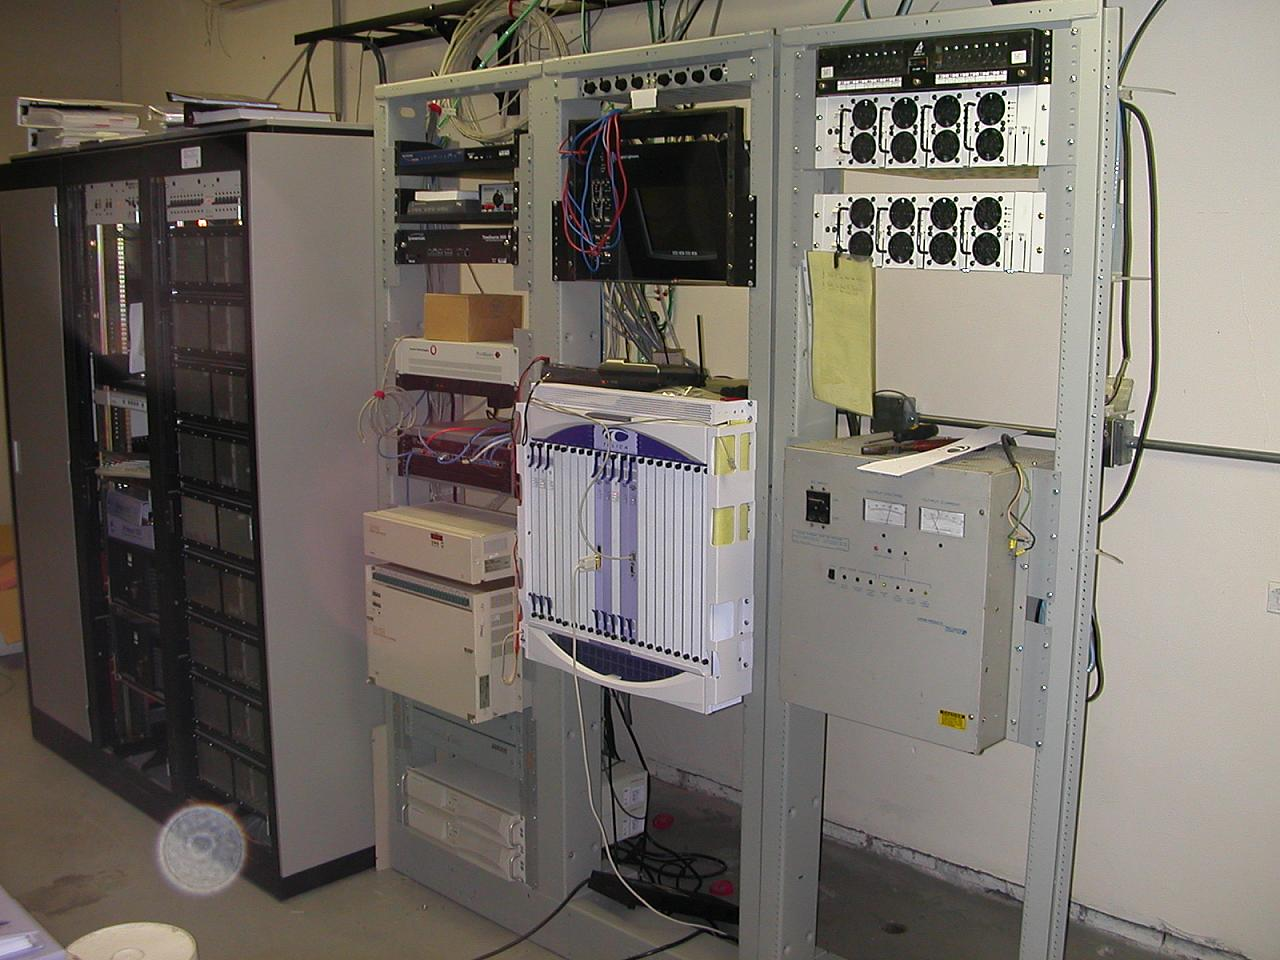 Main racks for this facility with power, switch, and muxes.